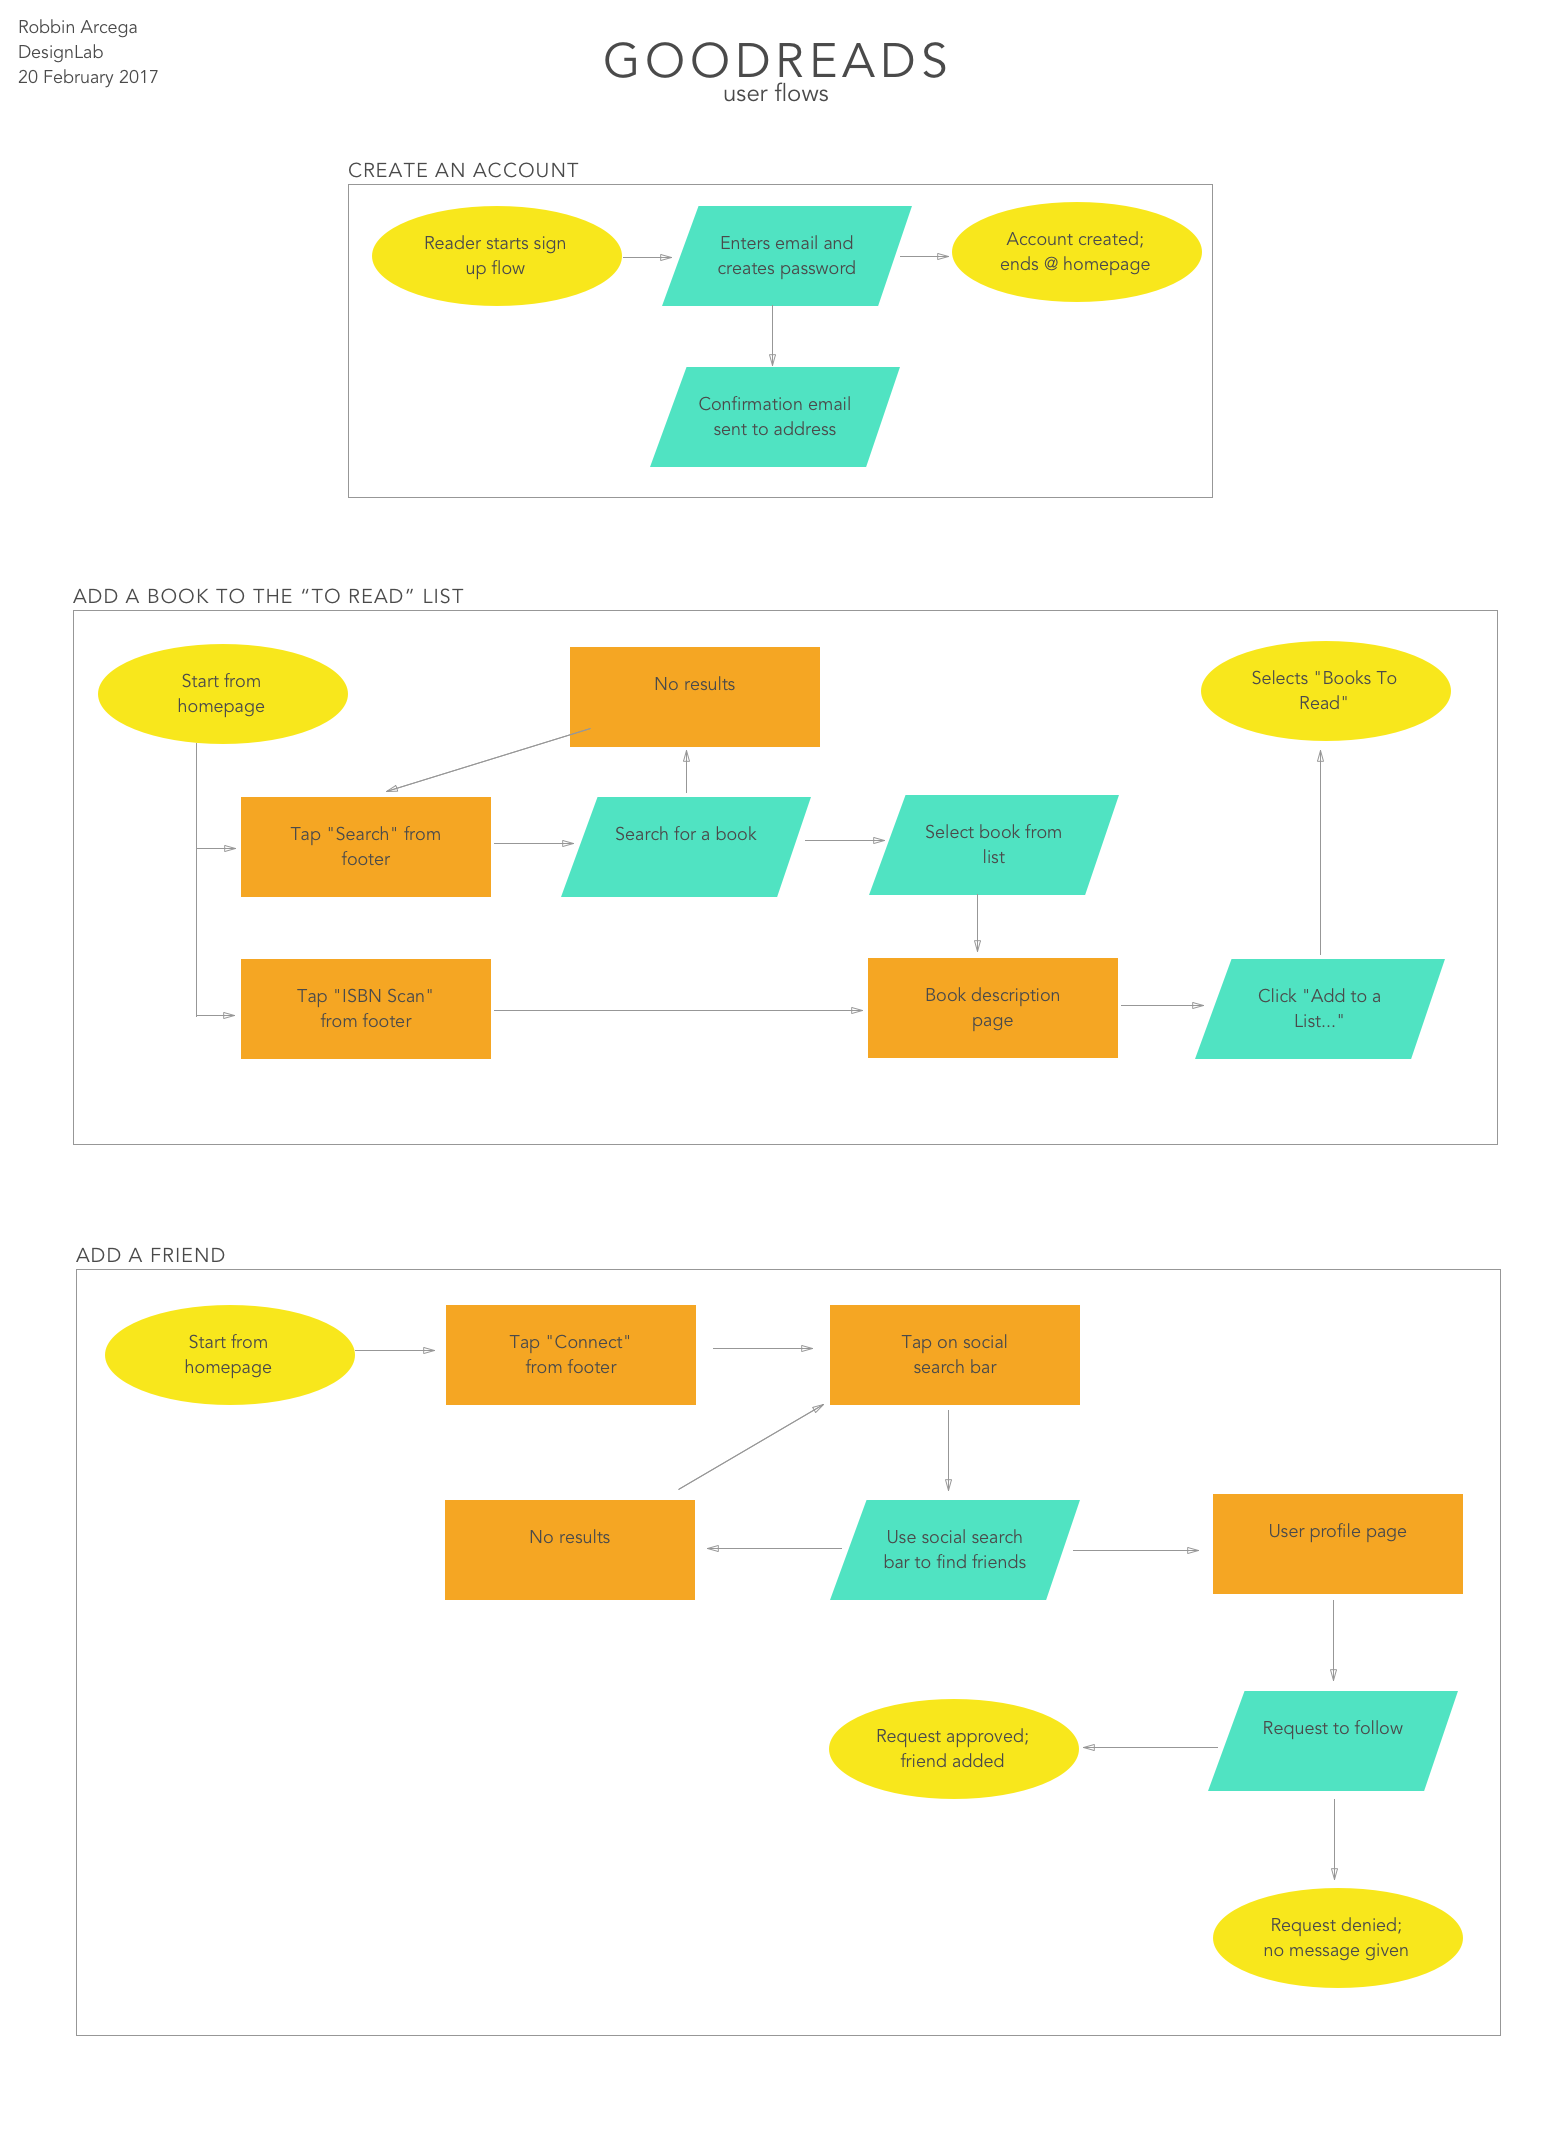 goodreads-userflows.png